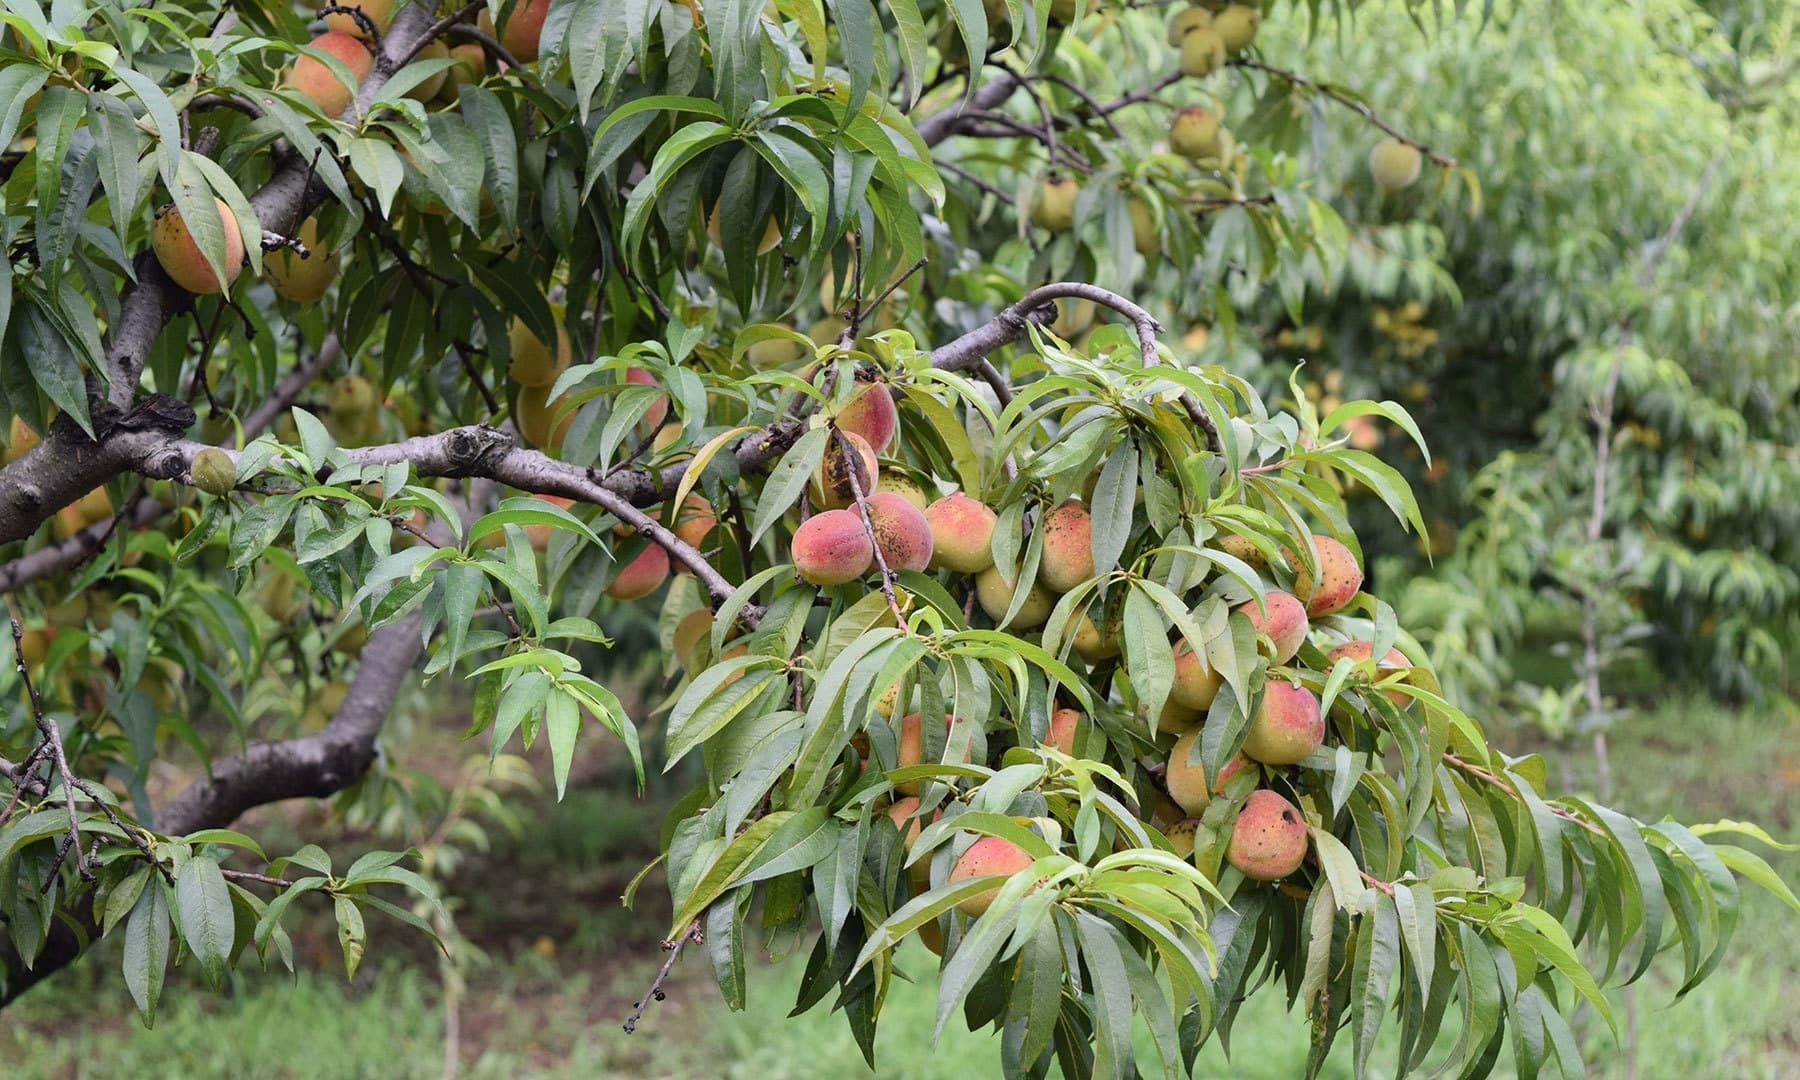 Another peach tree.